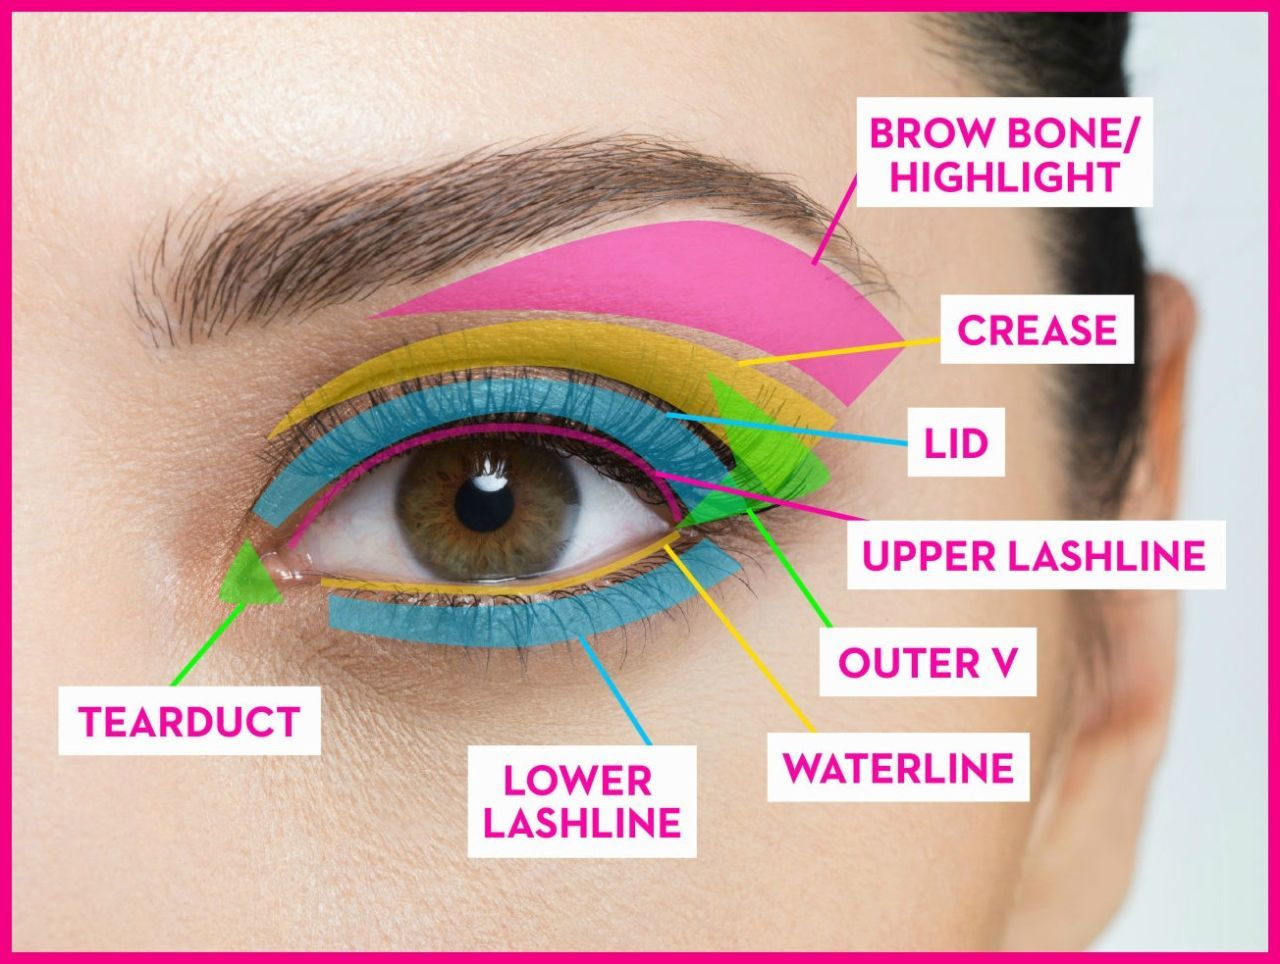 hight resolution of 16 eye makeup tips you need to know easy eye makeup tricks eye diagram for makeup eye map where to apply eyeshadow makeup